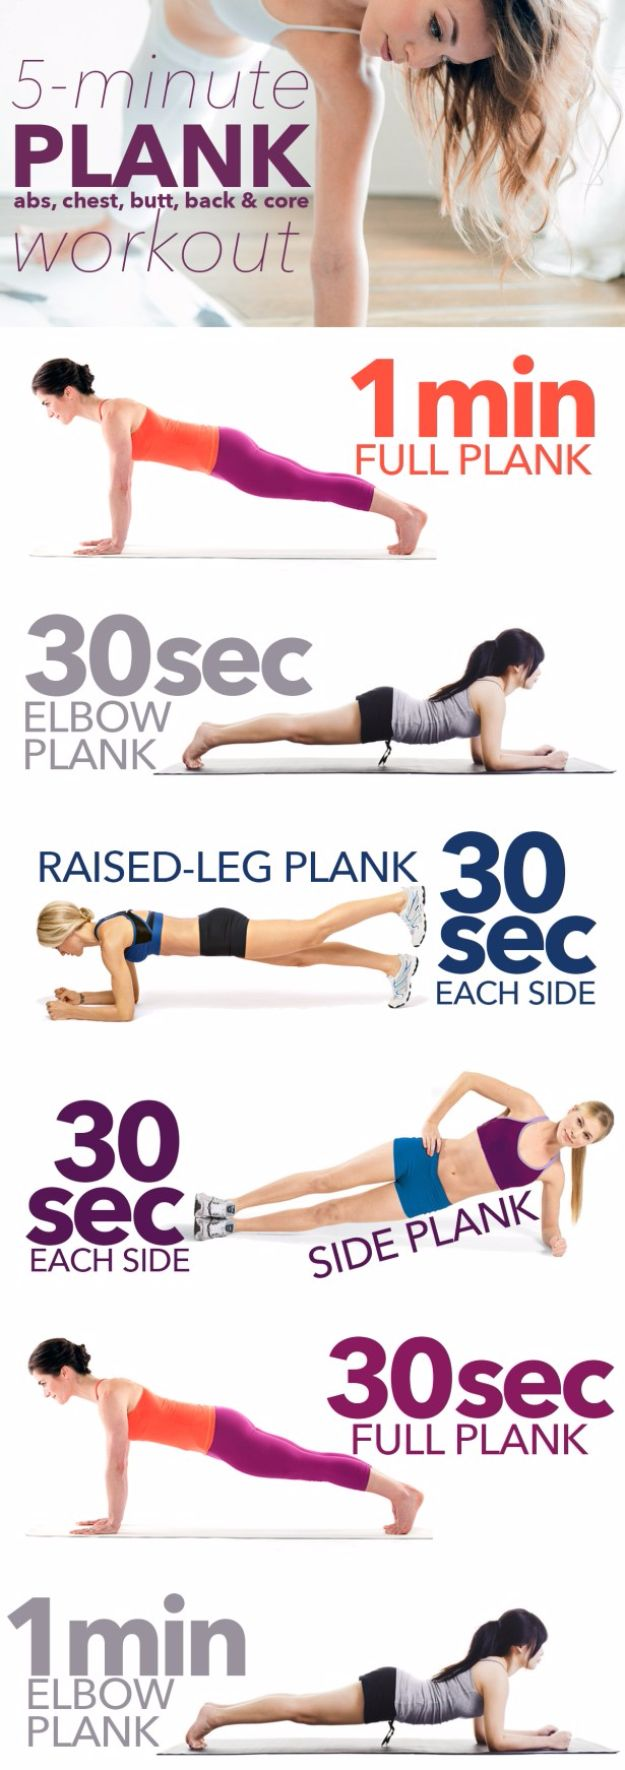 "Best Exercises for 2018 - 5-minute ""Almost-No-Work"" Plank Workout - Easy At Home Exercises - Quick Exercise Tutorials to Try at Lunch Break - Ways To Get In Shape - Butt, Abs, Arms, Legs, Thighs, Tummy http://diyjoy.com/best-at-home-exercises-2018"